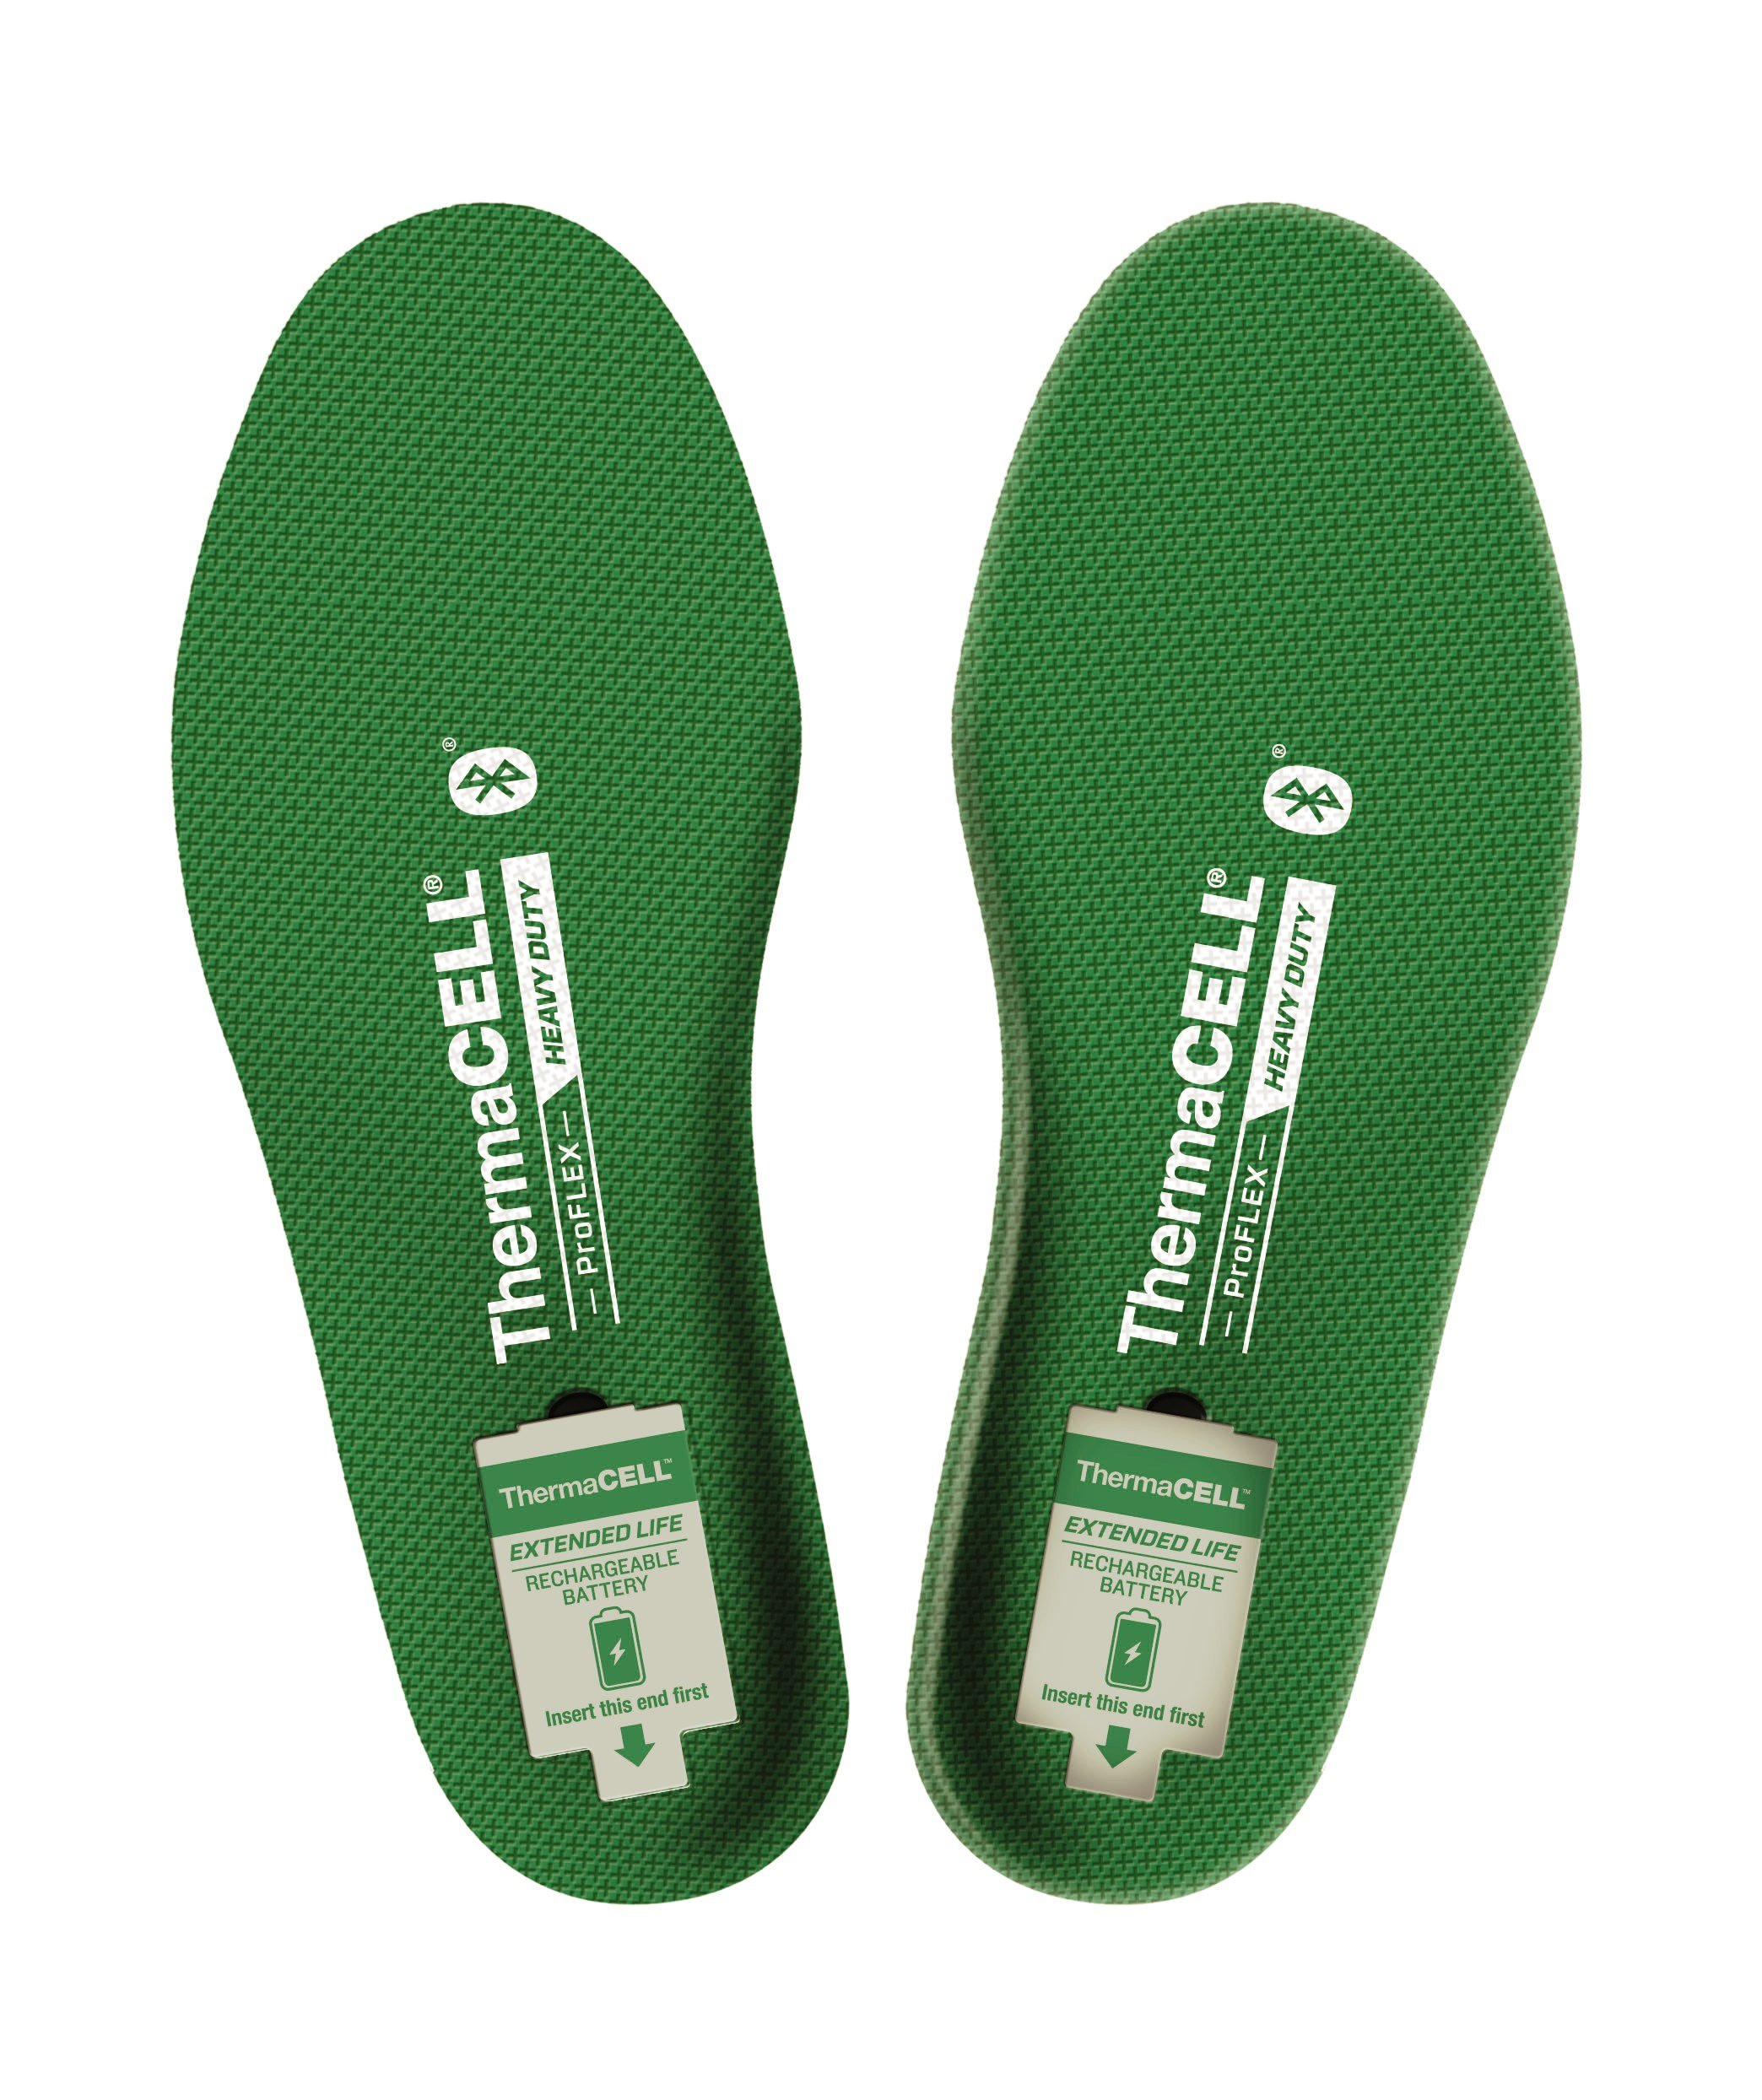 ThermaCELL Proflex Heavy Duty Heated Shoe Insoles with Bluetooth Compatibility, XL by Thermacell (Image #1)